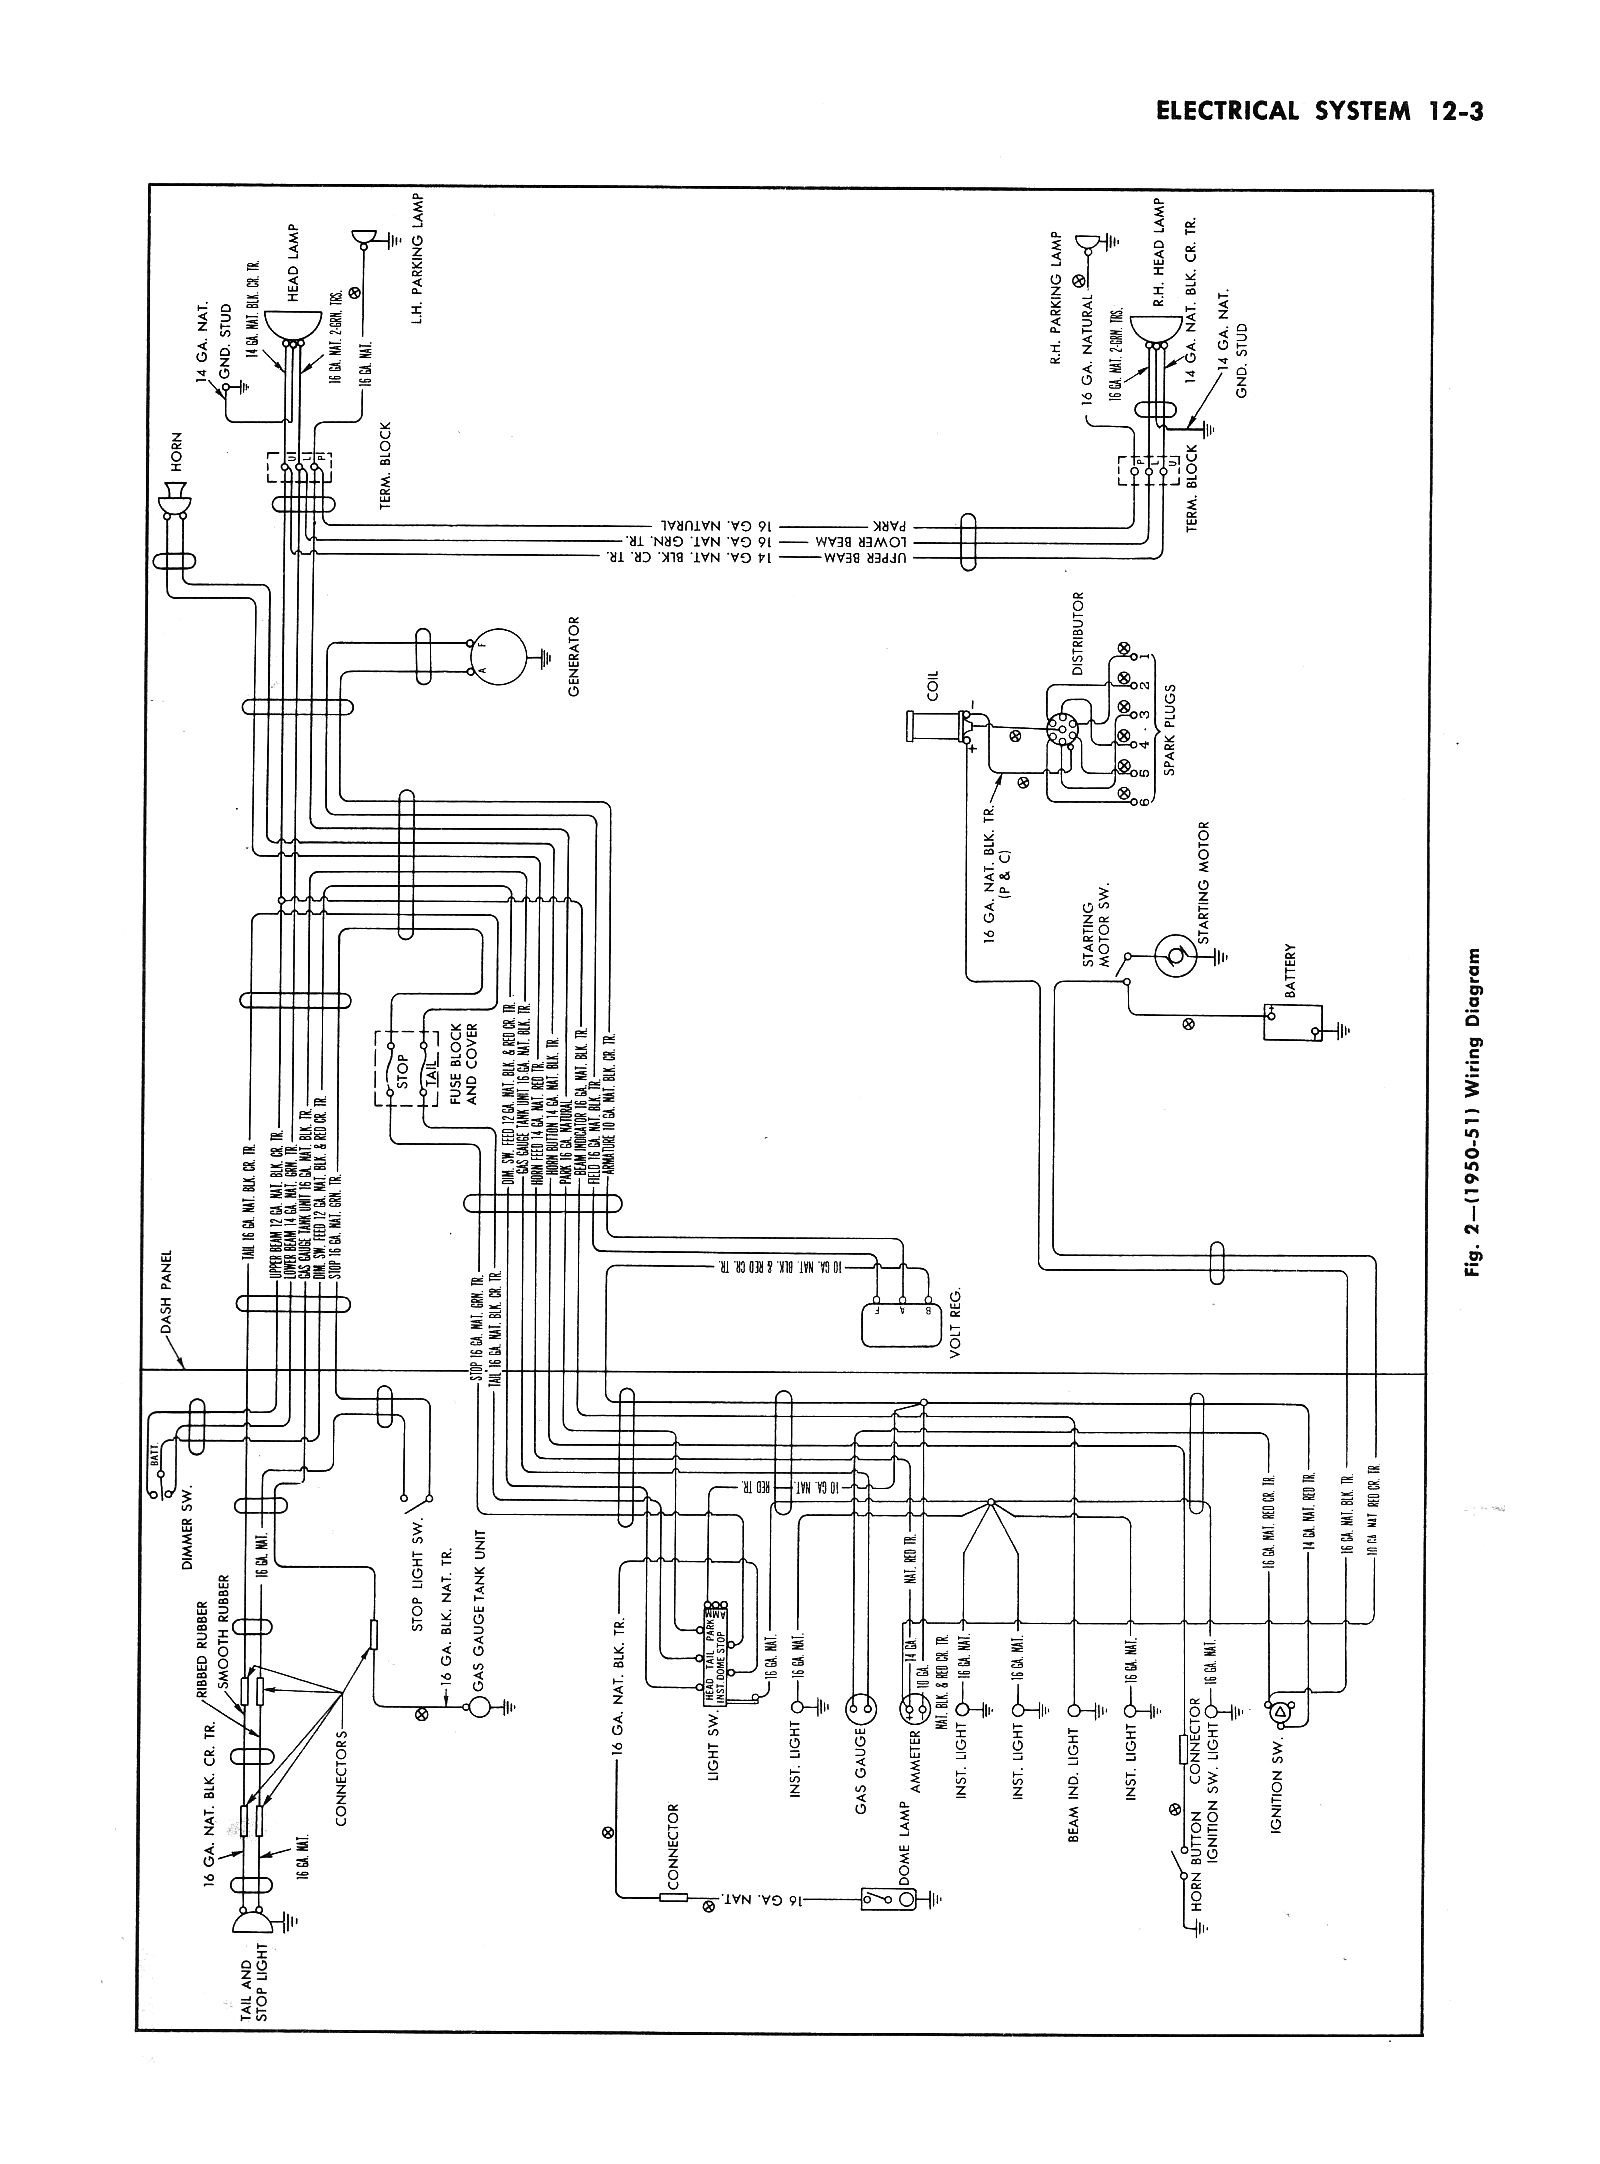 50ctsm1203 chevy wiring diagrams chevy wiring harness diagram at honlapkeszites.co